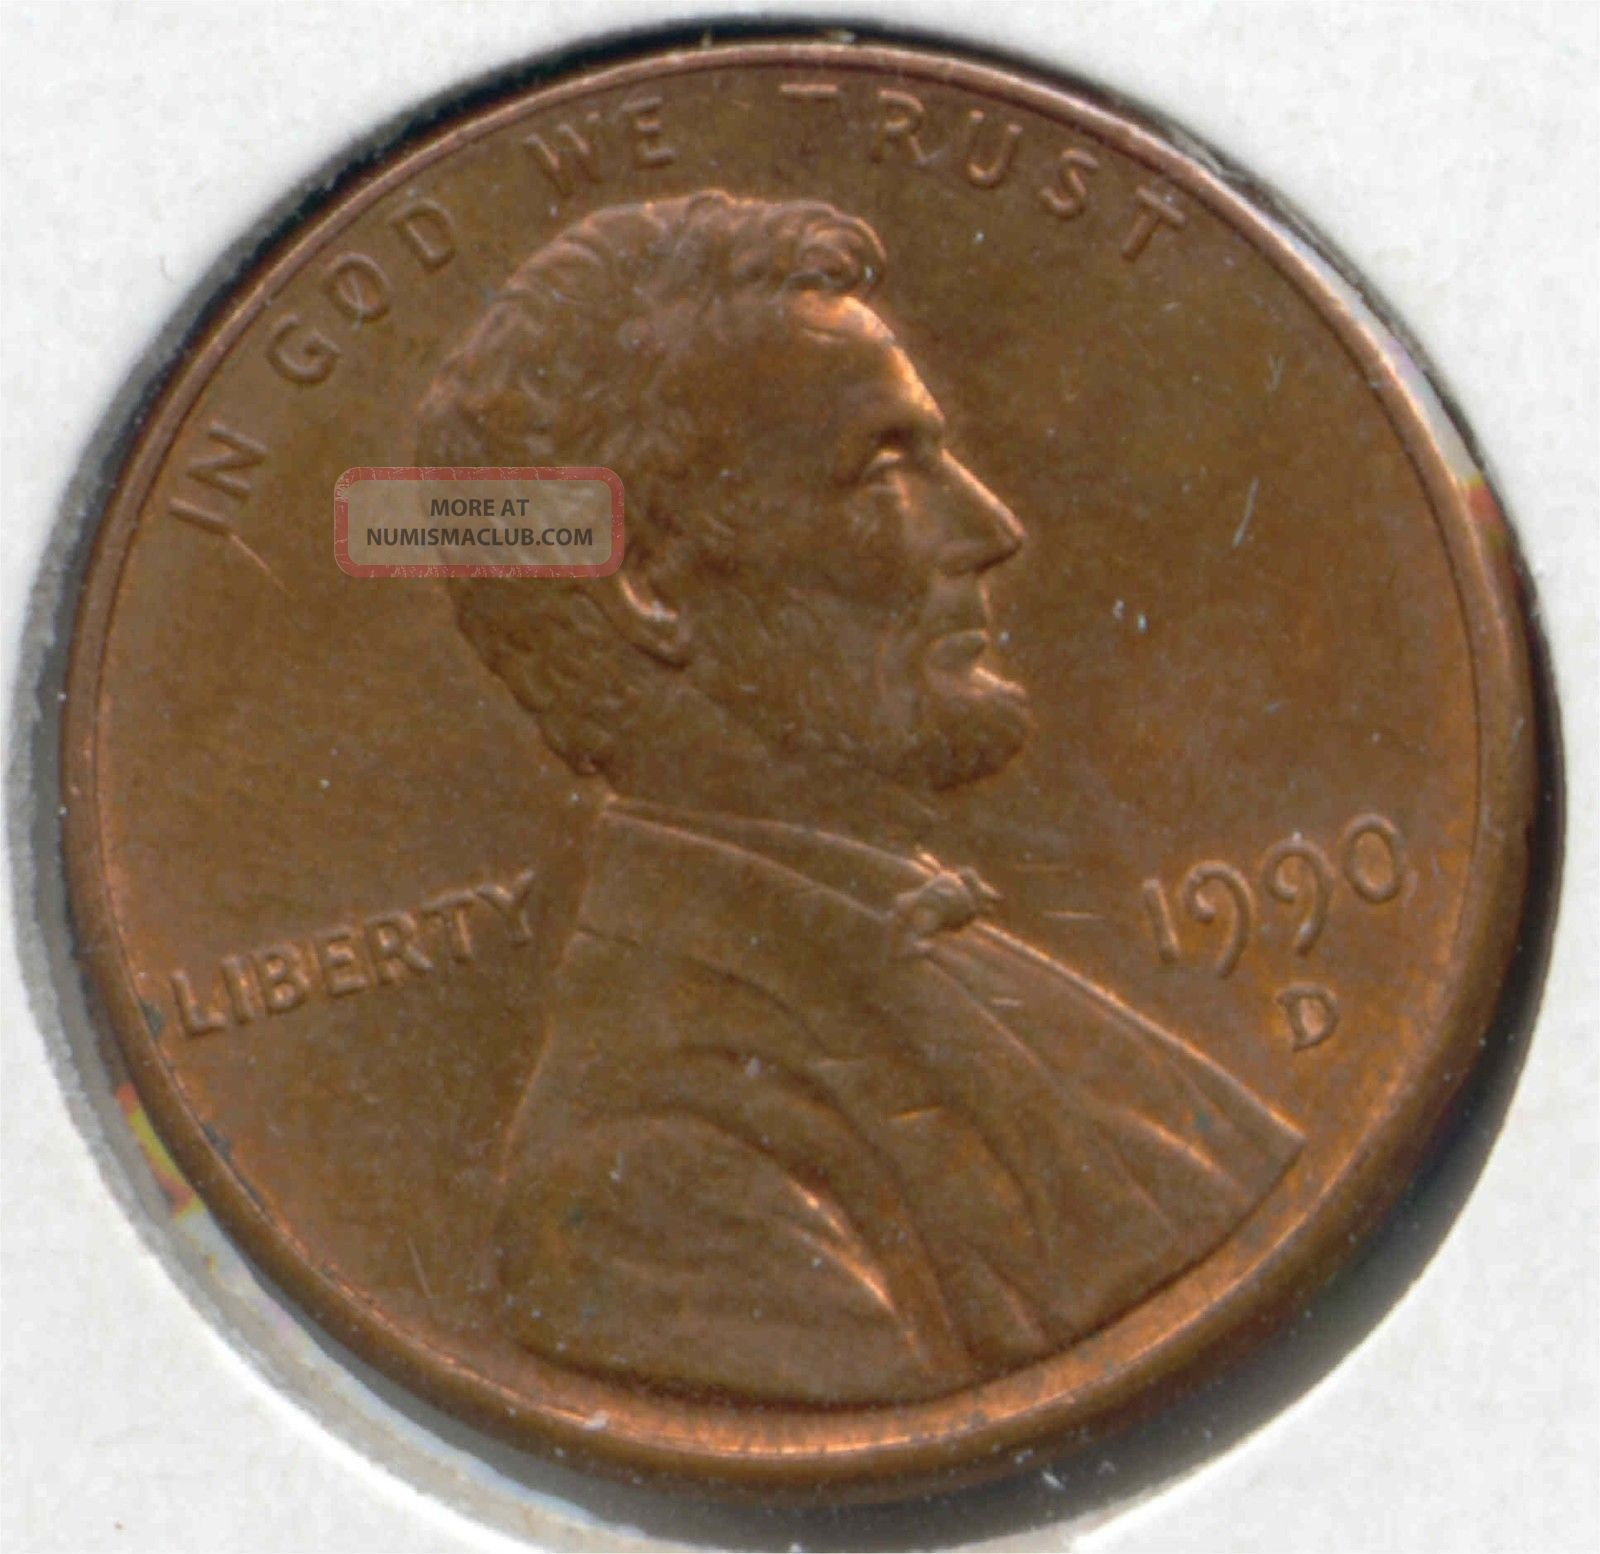 Usa 1990 D American 1 Cent Lincoln Memorial Penny 1990d 1c Exact Coin